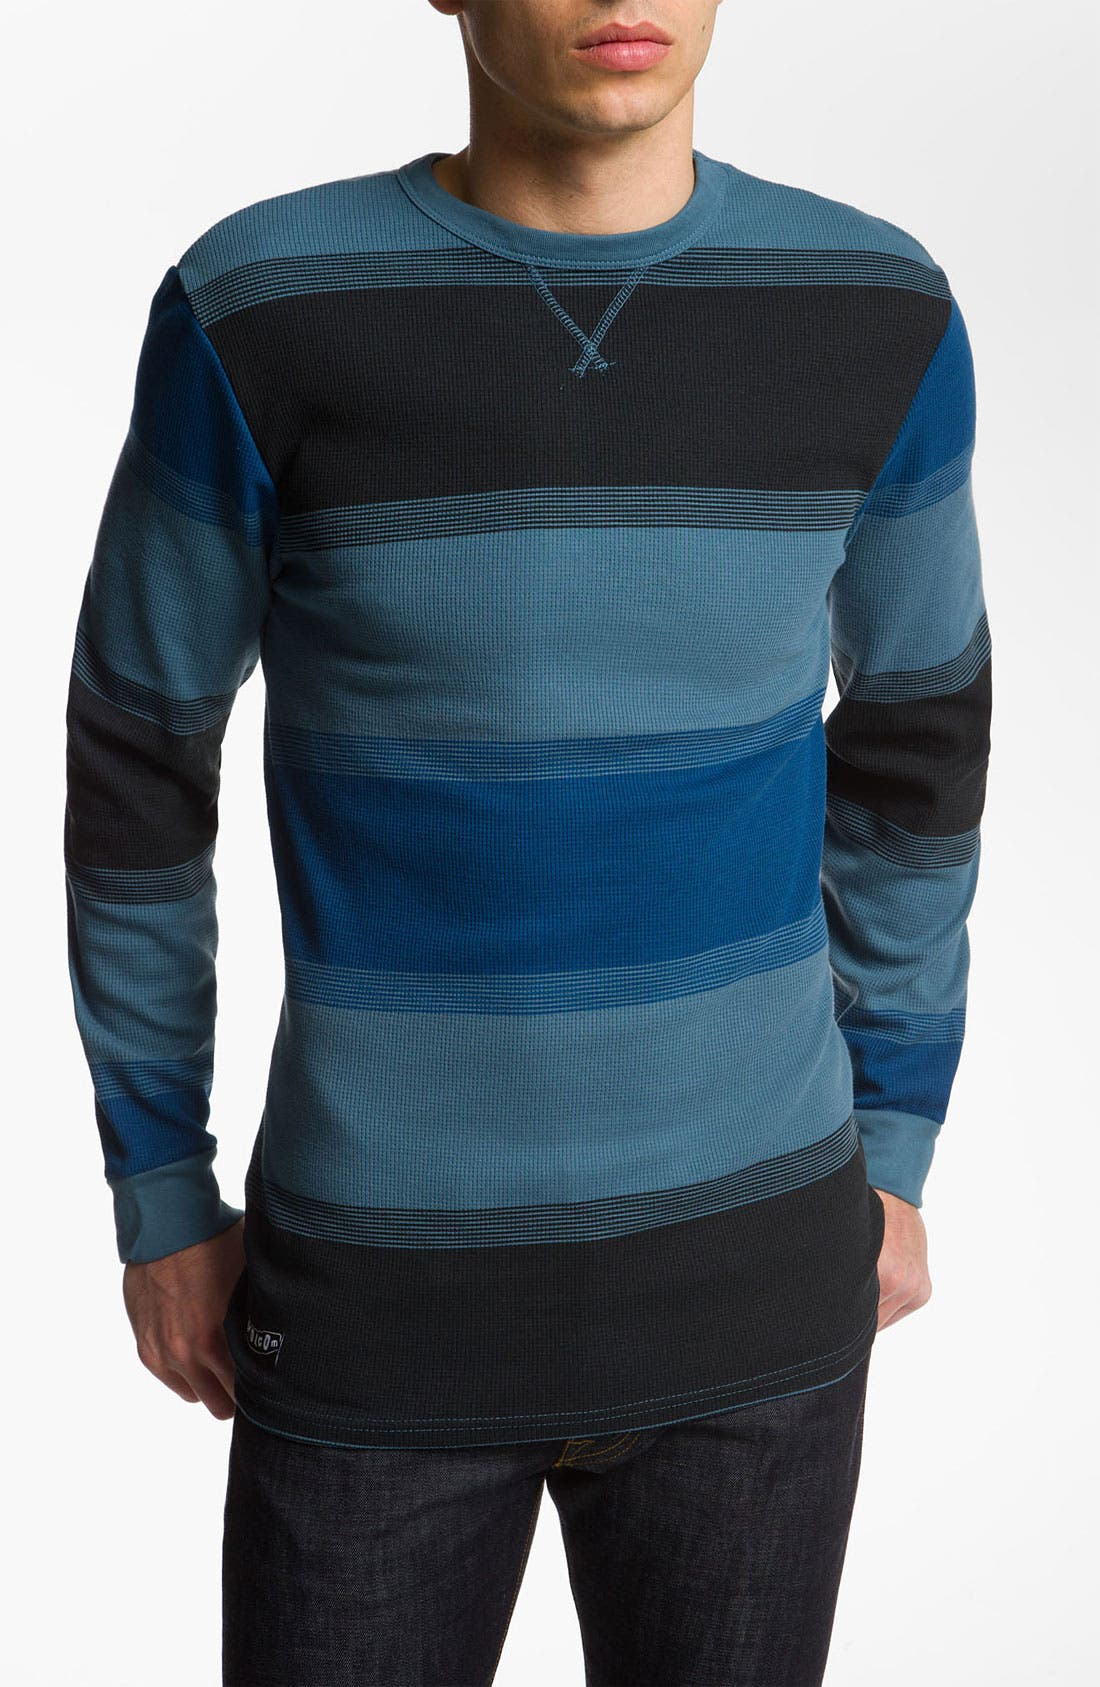 Alternate Image 1 Selected - Volcom 'Rail Way' Long Sleeve Thermal T-Shirt